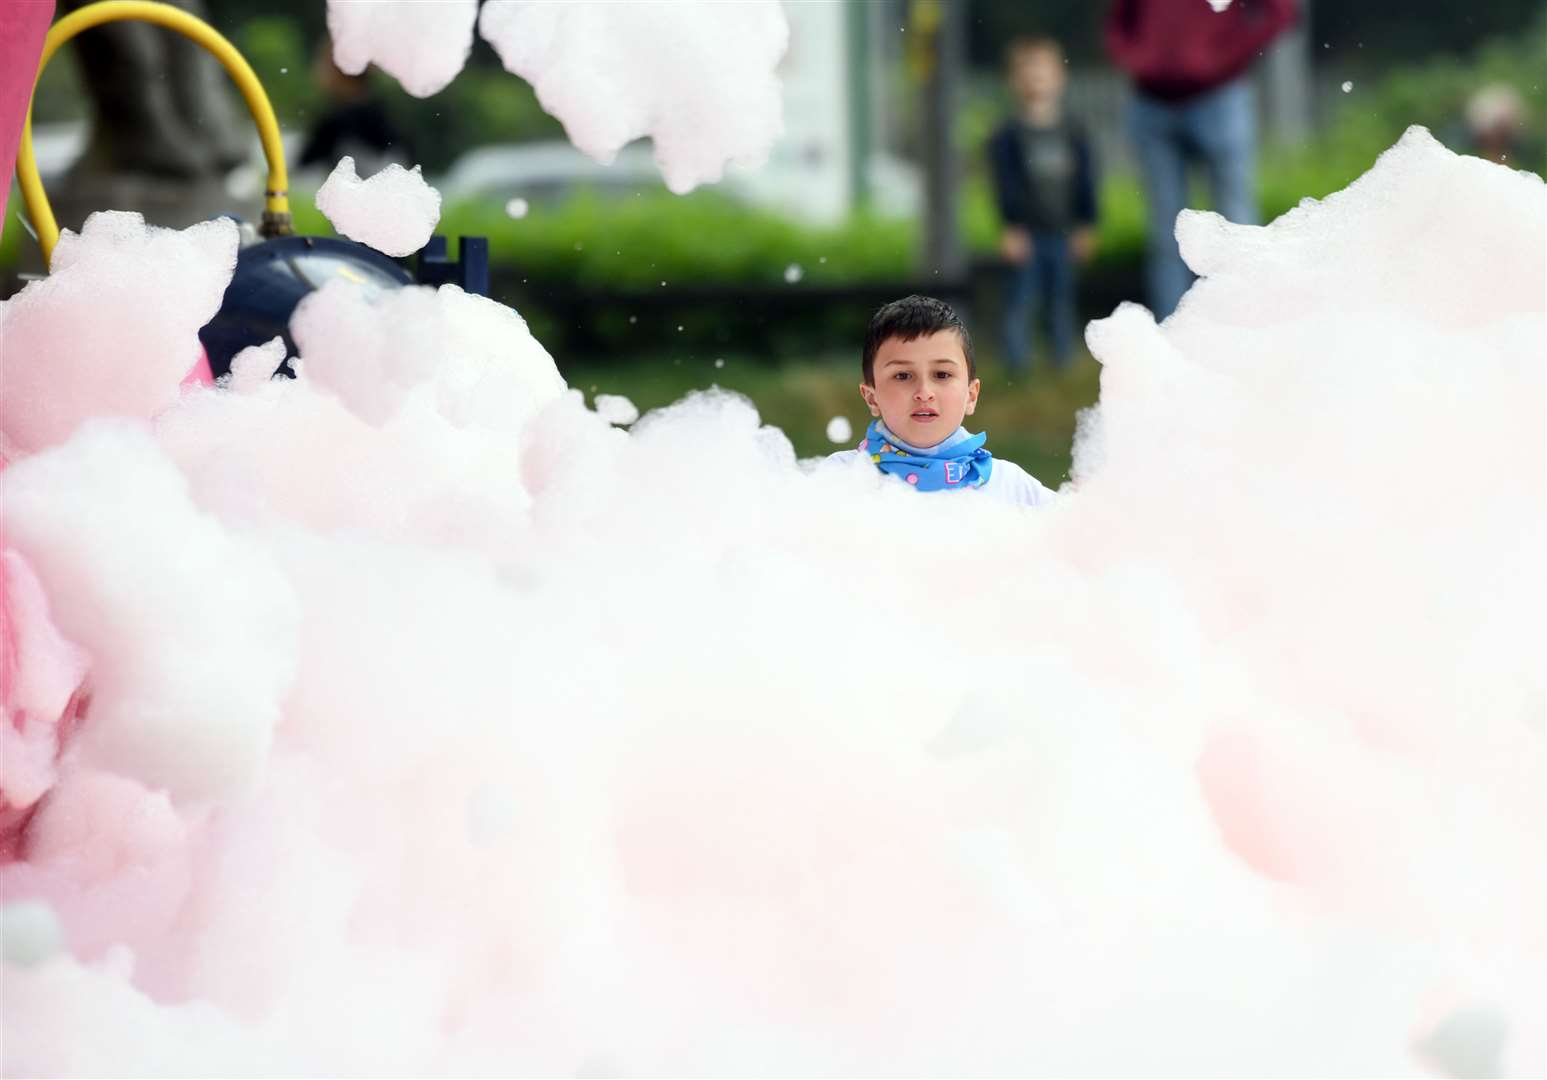 Bubble Rush at The Walks in Kings Lynn. MLNF-21AF09595